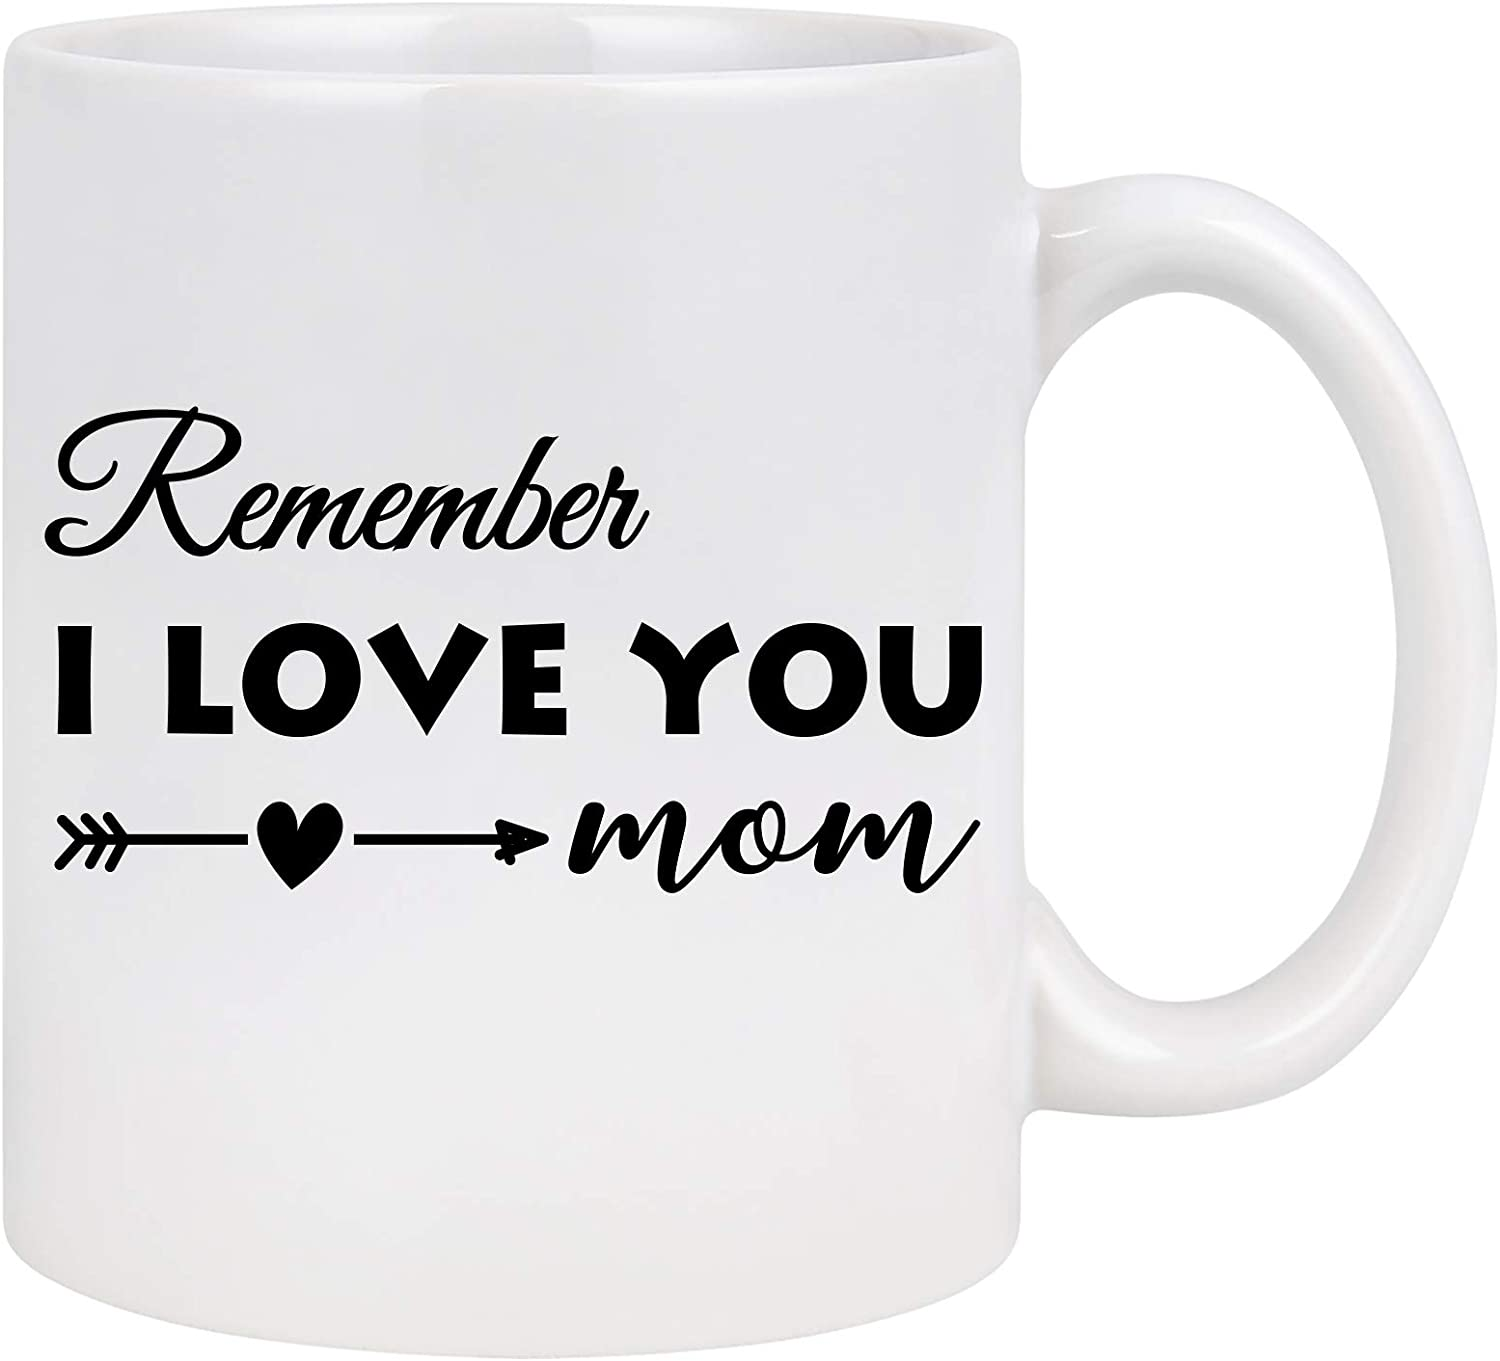 Mom Coffee Mug - Remember I Love You Mom - Mothers Day Gift for Mom from Daughter - Funny Mom Mug - Novelty Gift Idea for Christmas Birthday Women 11 Oz